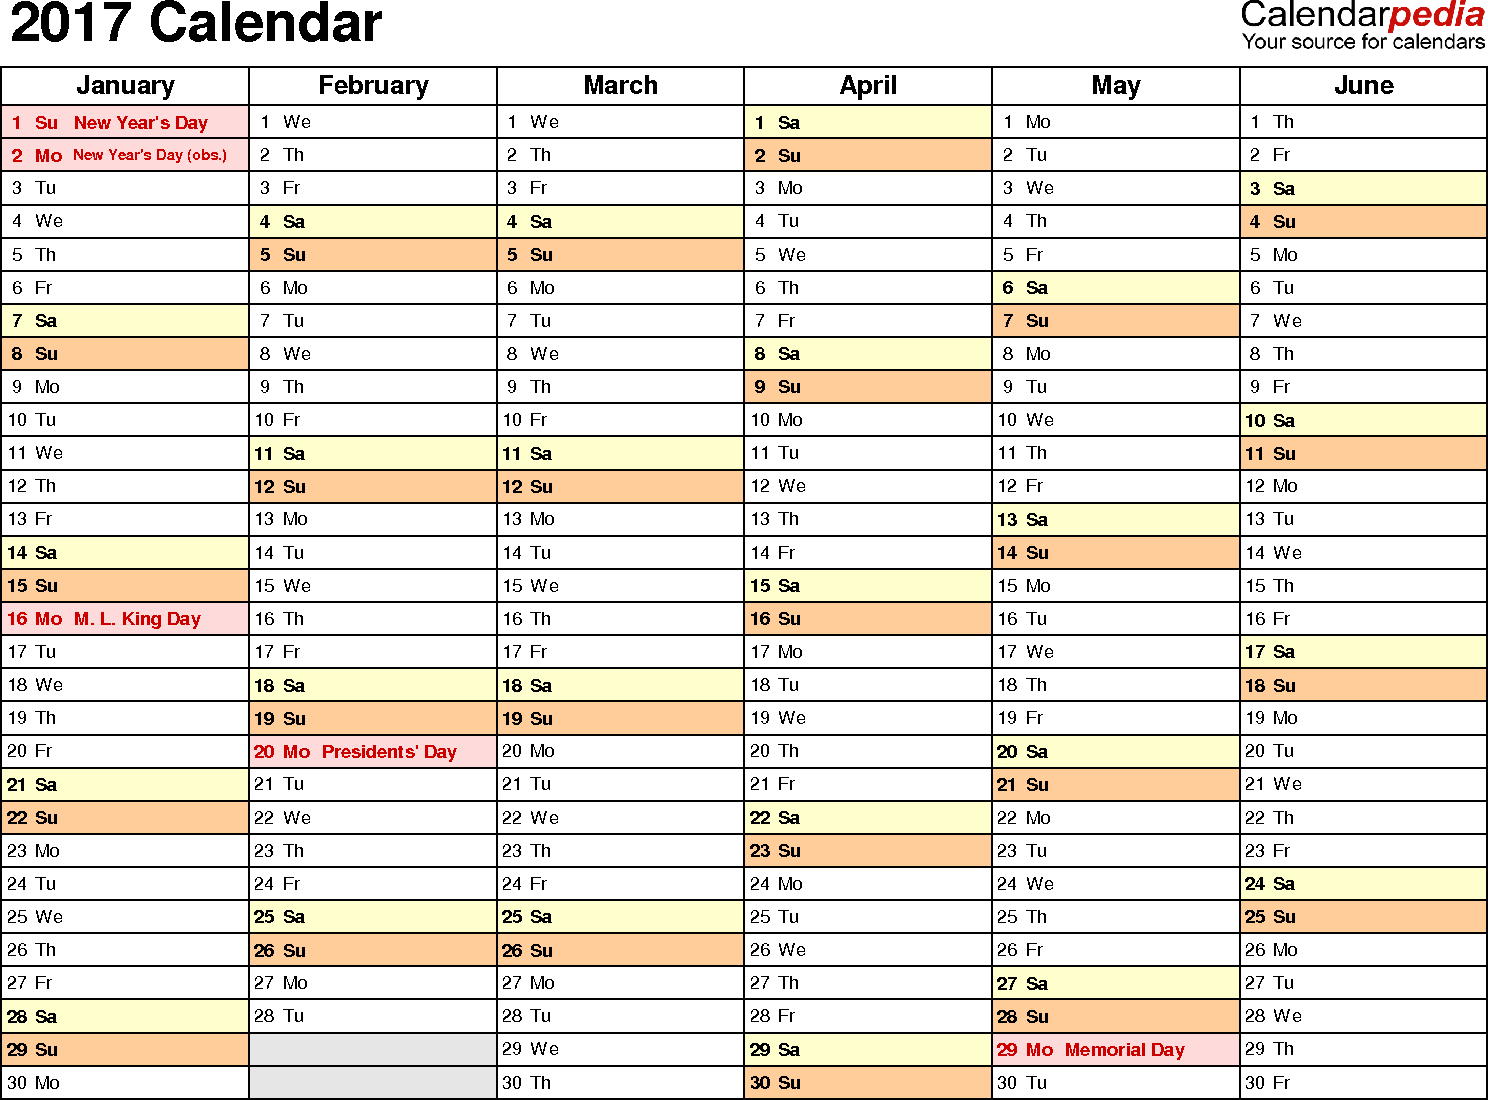 Ediblewildsus  Marvelous  Calendar  Download  Free Printable Excel Templates Xls With Exciting Template   Calendar For Excel Months Horizontally  Pages Landscape Orientation With Charming How To Do A Drop Down In Excel Also Lock Column Excel In Addition Too Many Different Cell Formats Excel  And Kyb Excel G As Well As How To Filter Duplicates In Excel Additionally Excel Match Formula From Calendarpediacom With Ediblewildsus  Exciting  Calendar  Download  Free Printable Excel Templates Xls With Charming Template   Calendar For Excel Months Horizontally  Pages Landscape Orientation And Marvelous How To Do A Drop Down In Excel Also Lock Column Excel In Addition Too Many Different Cell Formats Excel  From Calendarpediacom